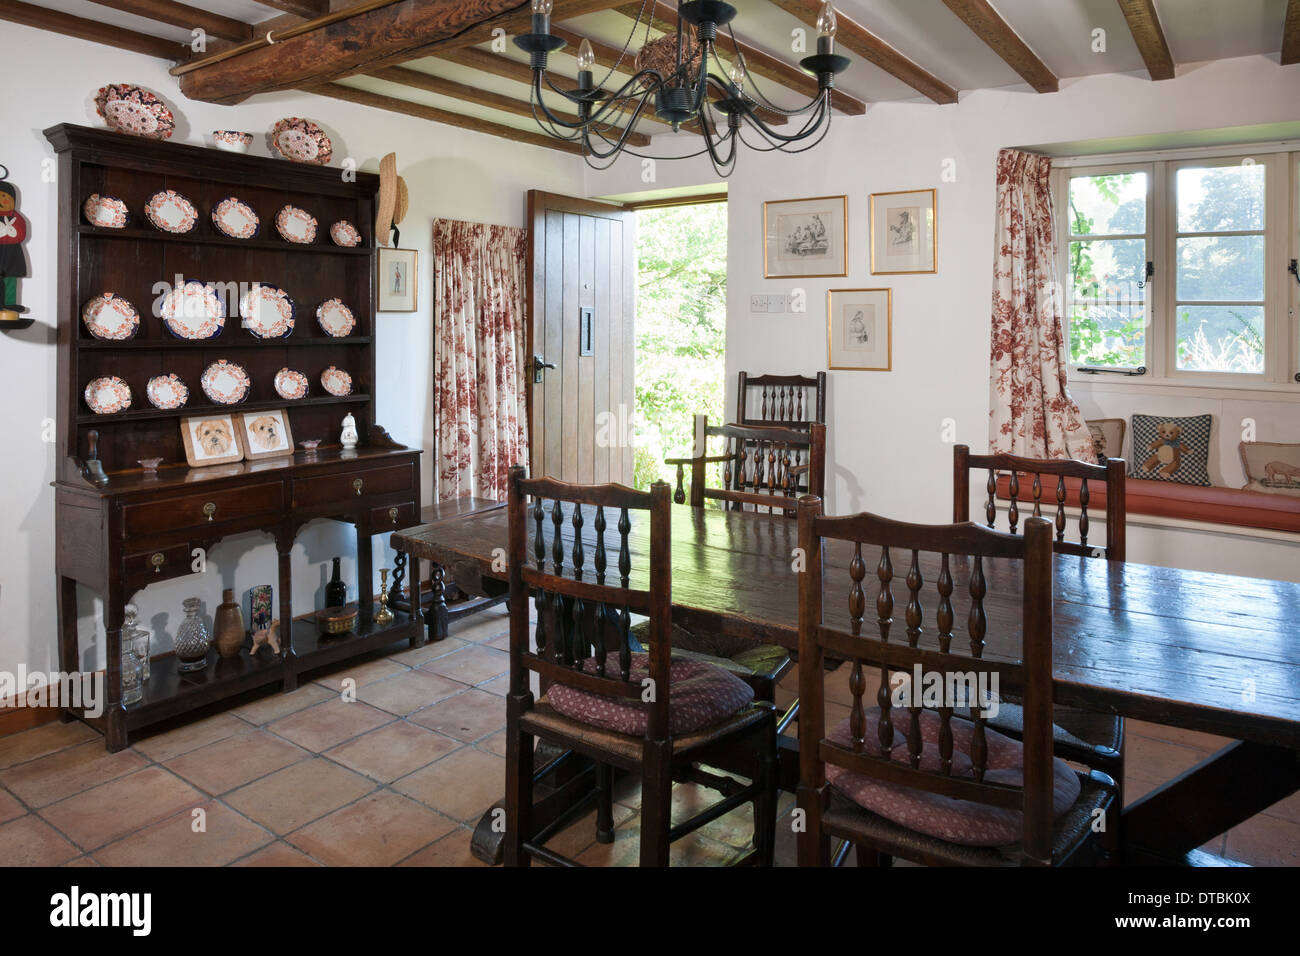 Period Small Cottage Dining Room With Tile Floor Oak Furniture And Front Door Open